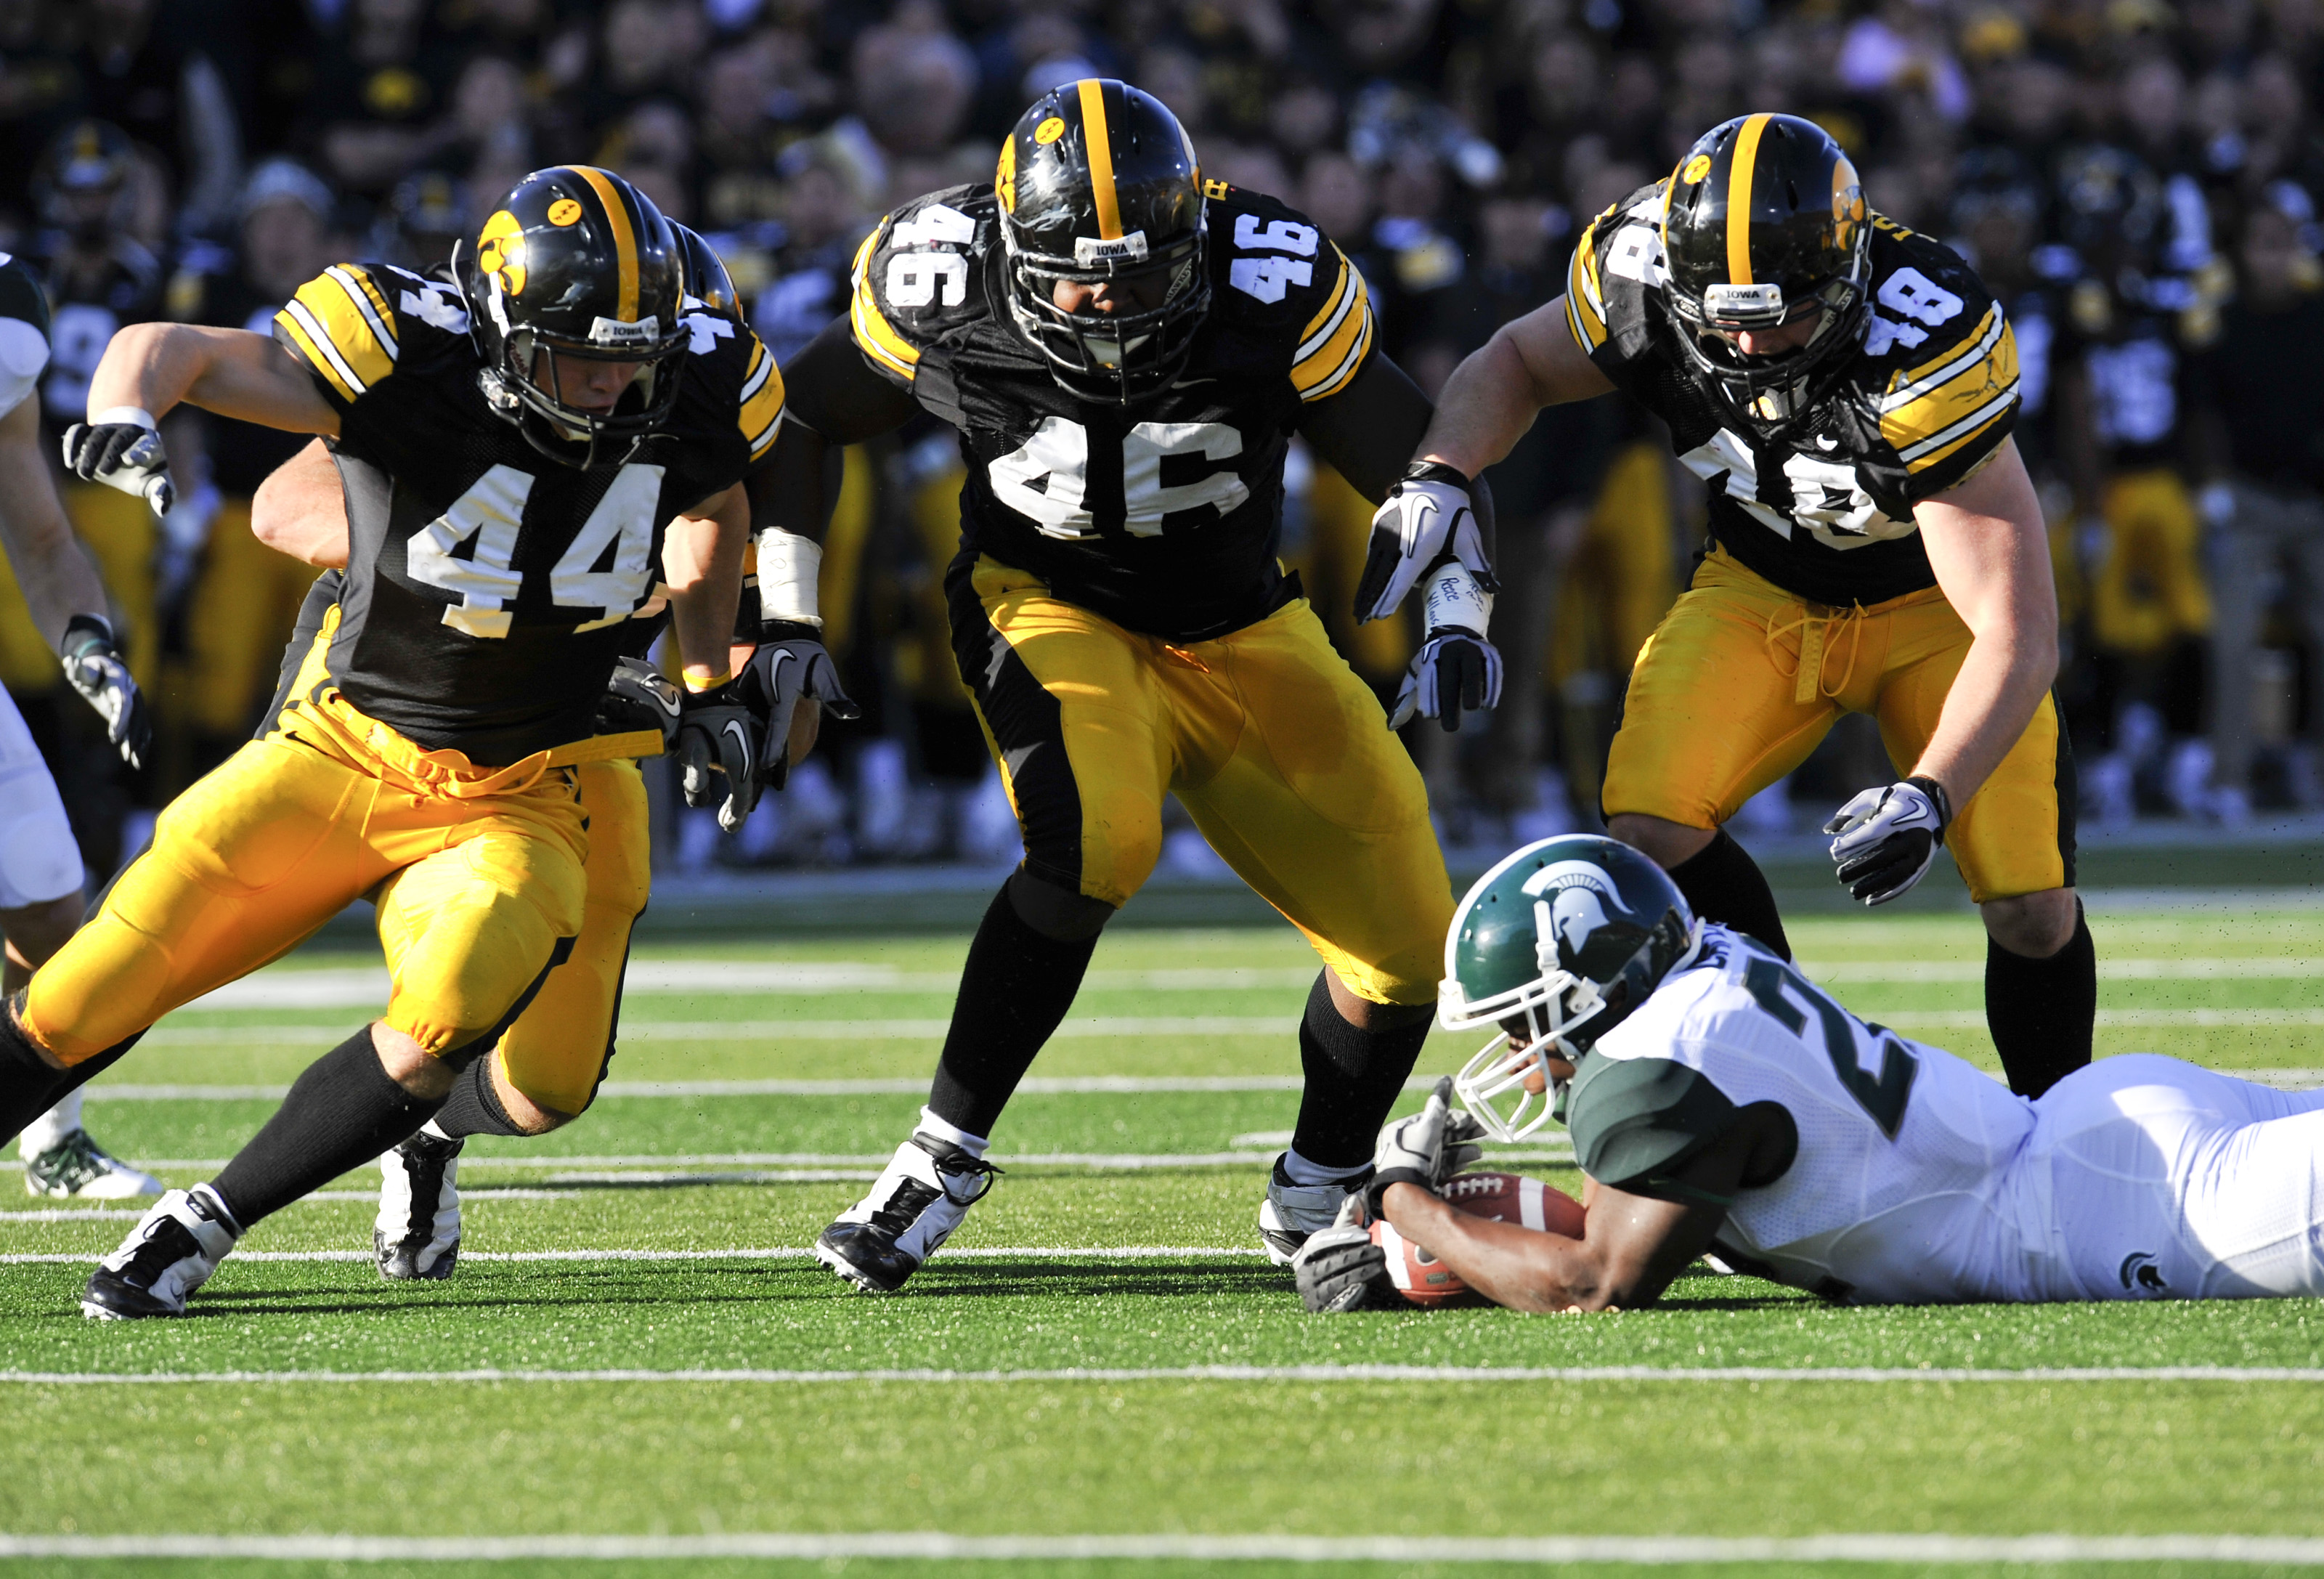 IOWA CITY, IA - OCTOBER 30: Running back Larry Caper #22 of the Michigan State Spartans recovers his fumble as line backer James Morris #44, defensive line man Christian Ballard #46, and line backer Troy Johnson #48 of the University of Iowa Hawkeyes clos